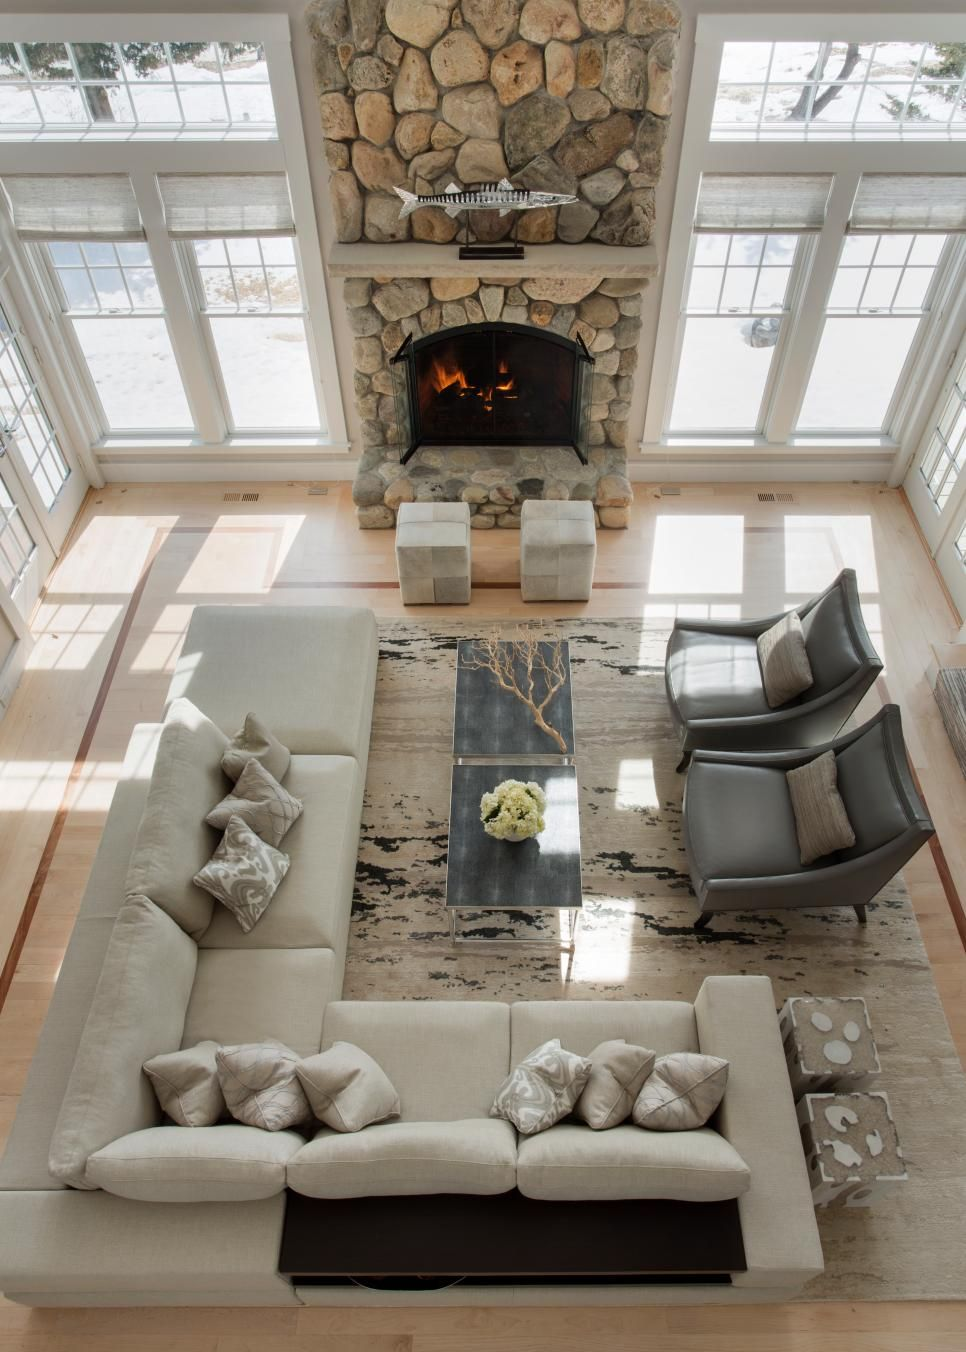 A Dramatic Floor To Ceiling Stone Fireplace Is The Focal Point In This Two Story Coastal Style Living Room Neutral Sectional And Wood Coffee Table Add